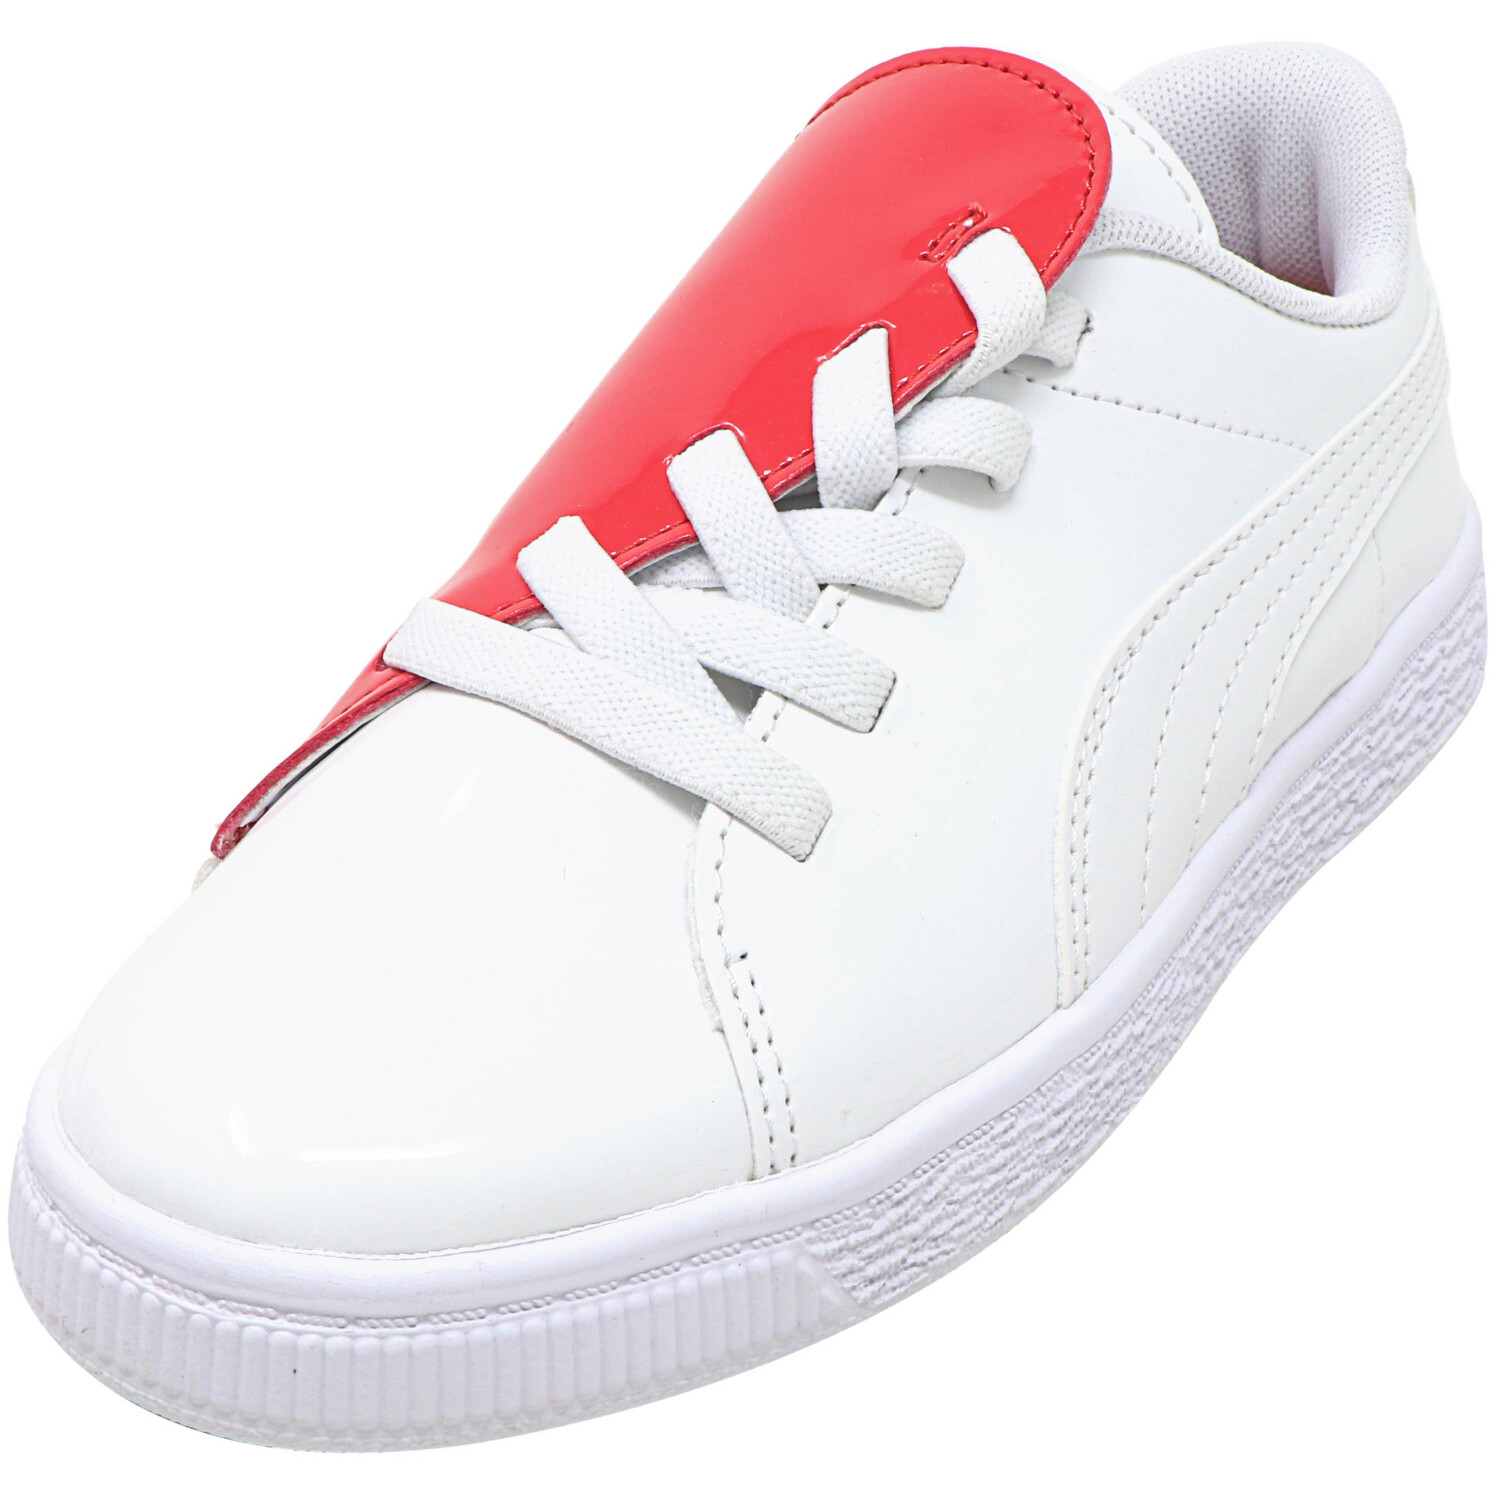 Puma Basket Crush Patent White / Hibiscus Low Top Leather Sneaker - 1M